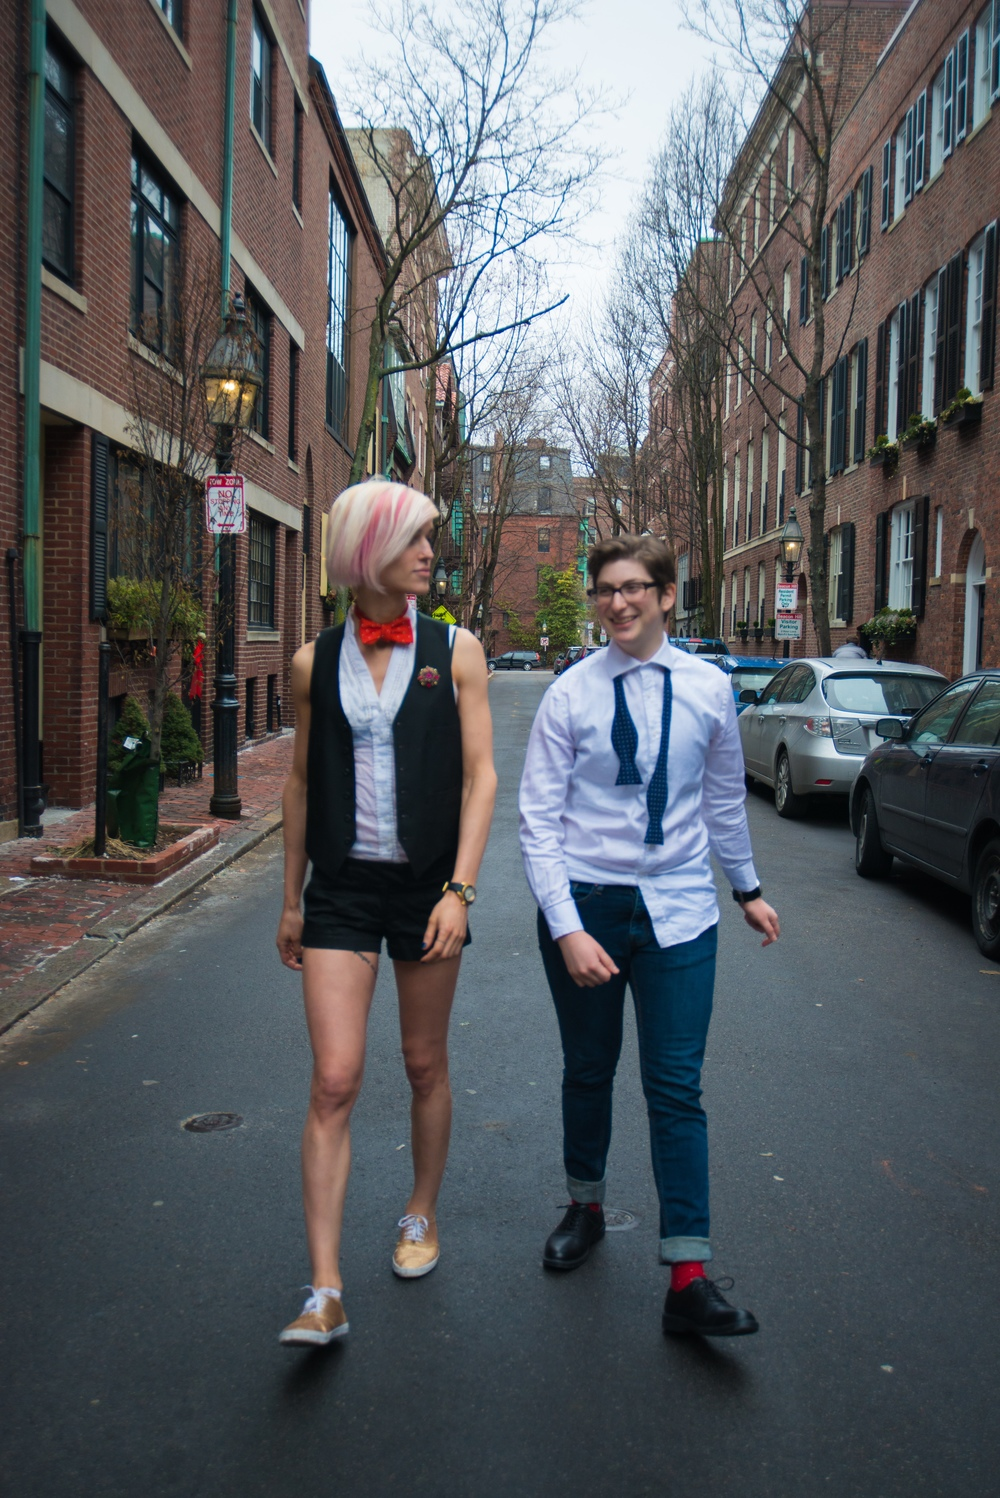 Qwear x SaintHarridan Bow Ties at Beacon Hill — Qwear